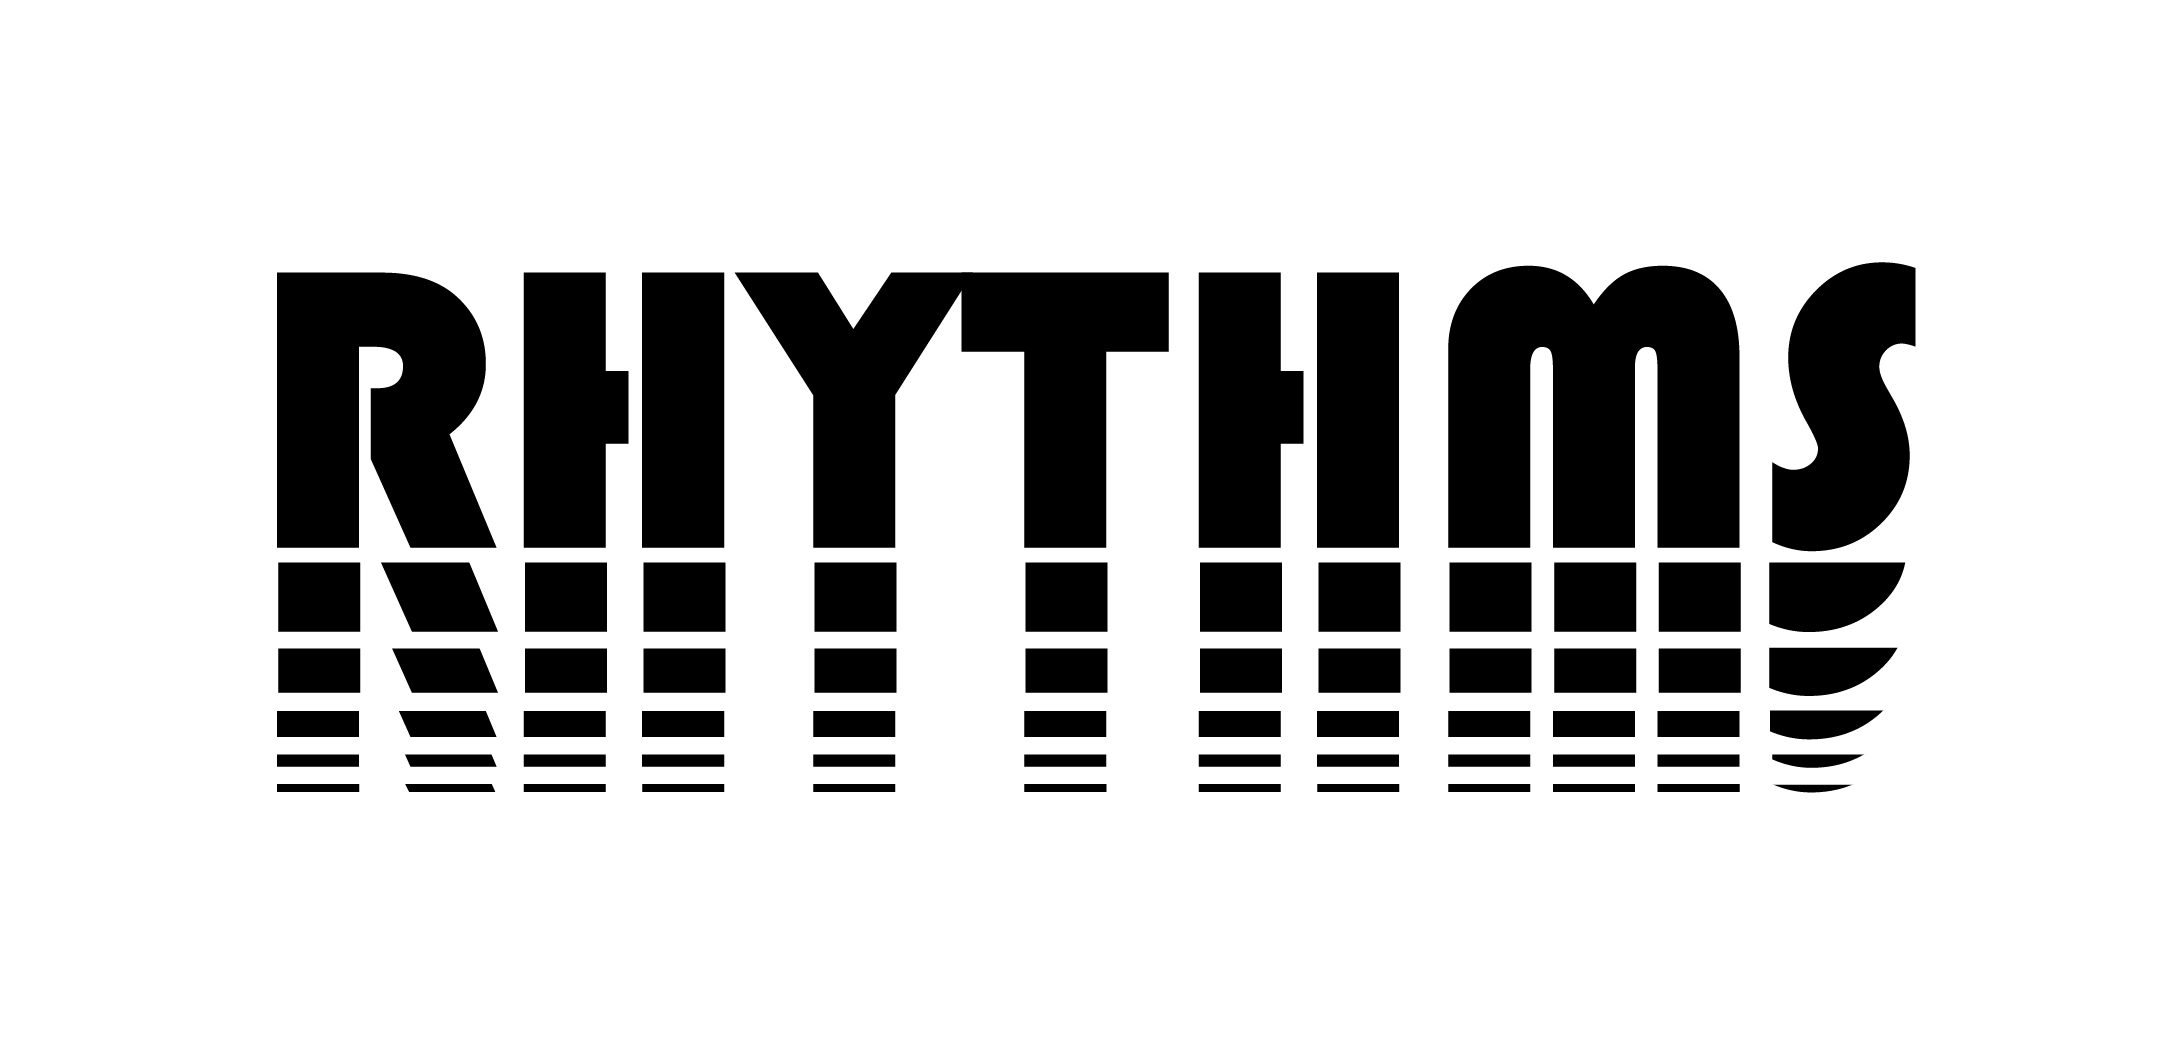 Rhythms Part 7: Sacrament